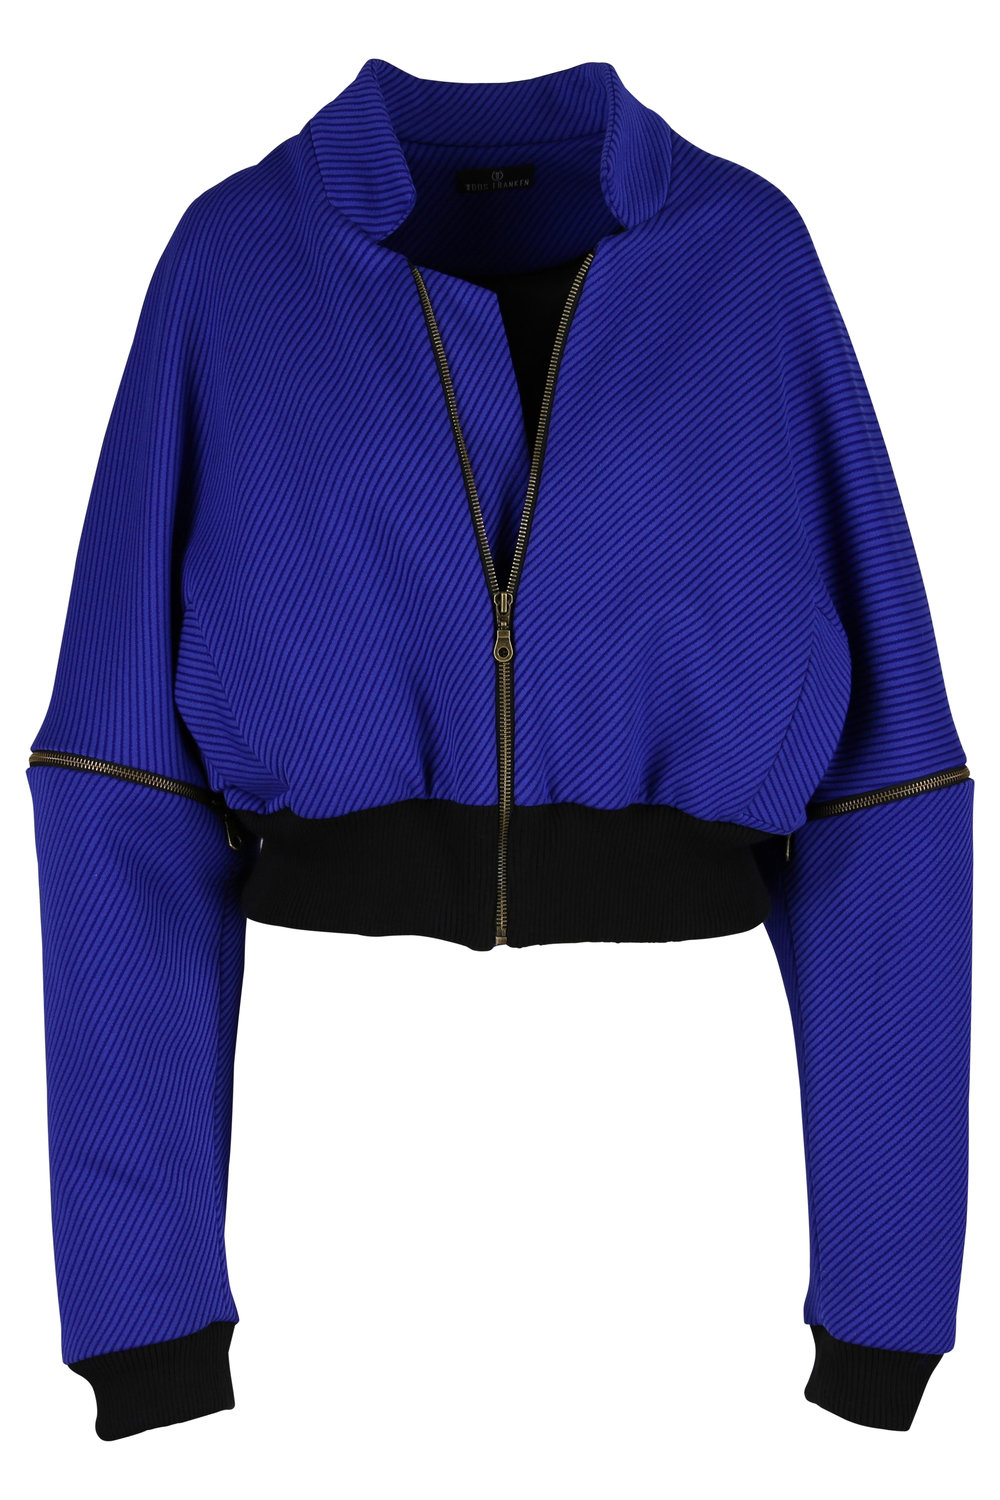 Bomberjacket-Zip-Blue-01.jpg